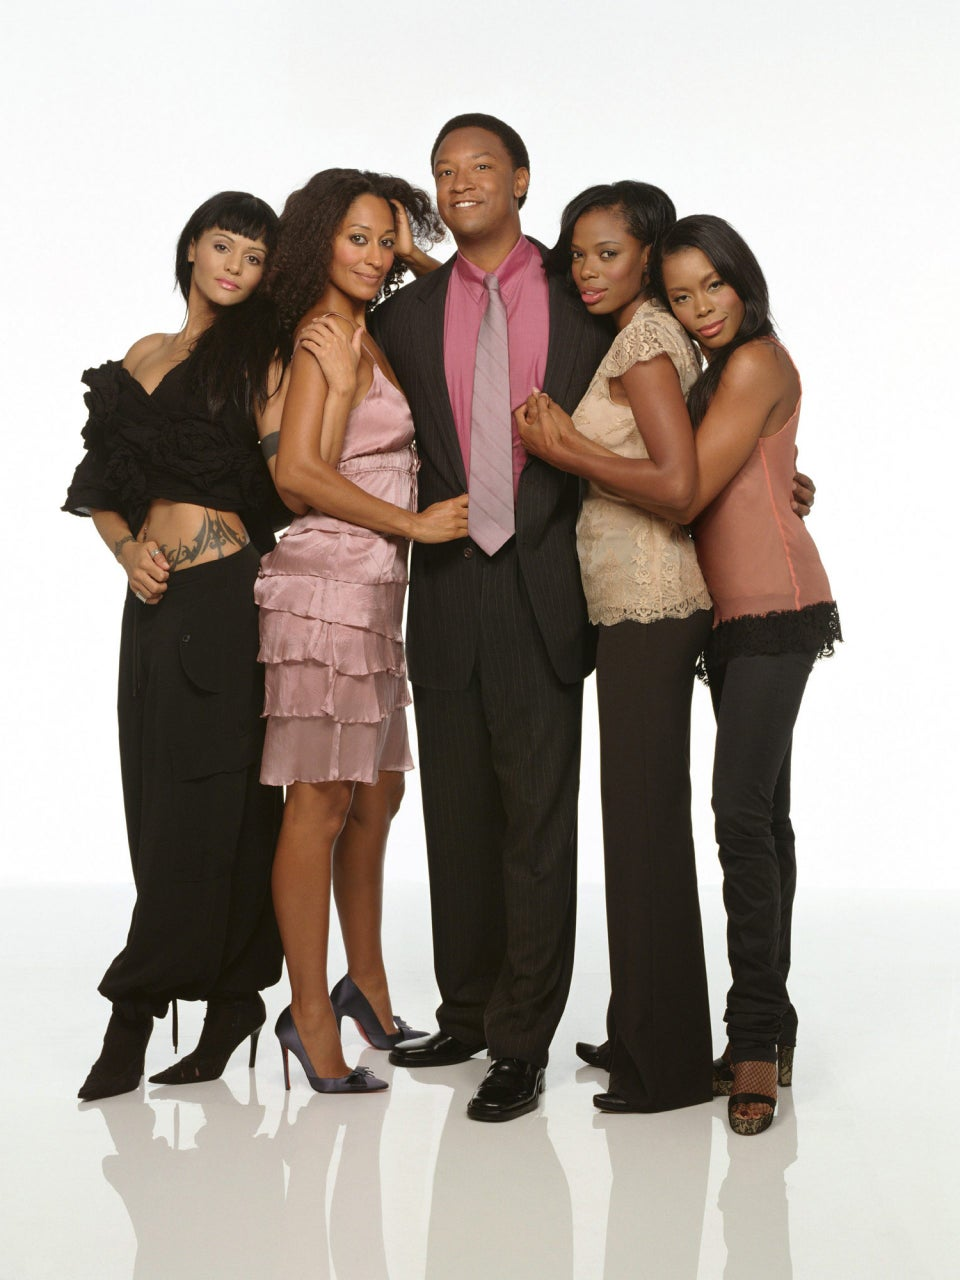 Reggie Hayes Details His Struggle With Finding Work After 'Girlfriends' – 'Those Were Pretty Awful Years'